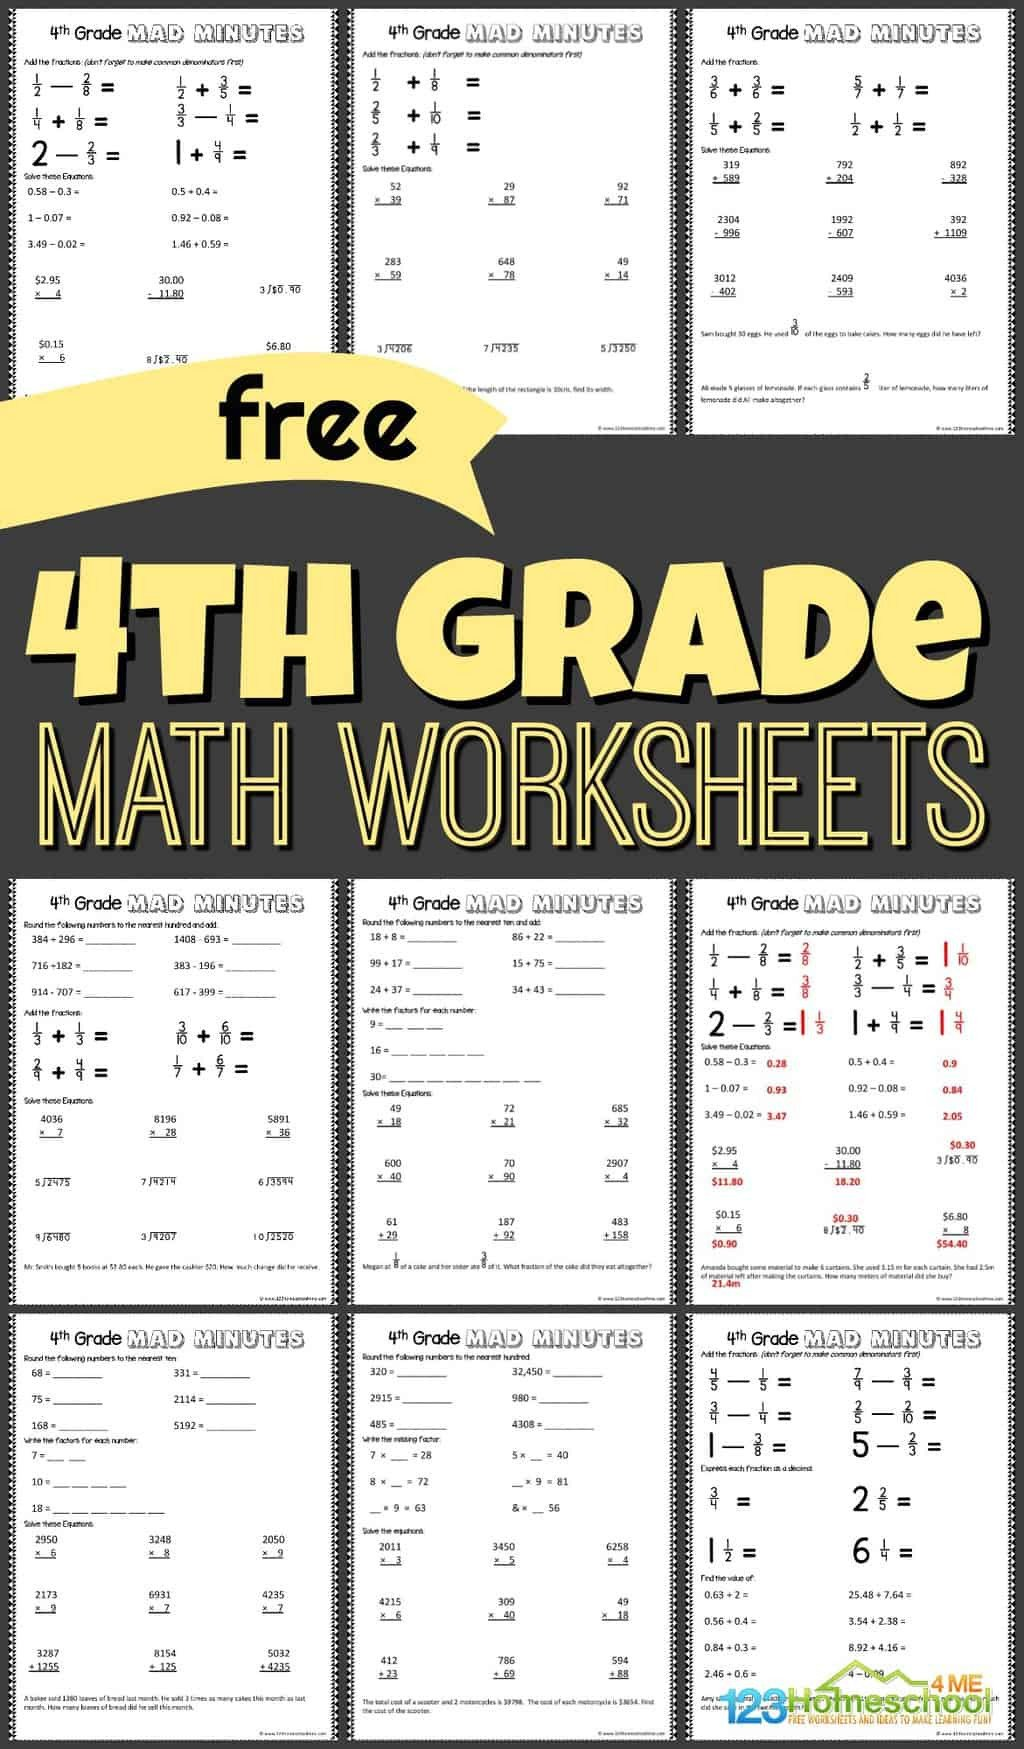 Word form Worksheets 4th Grade Free 4th Grade Math Worksheets